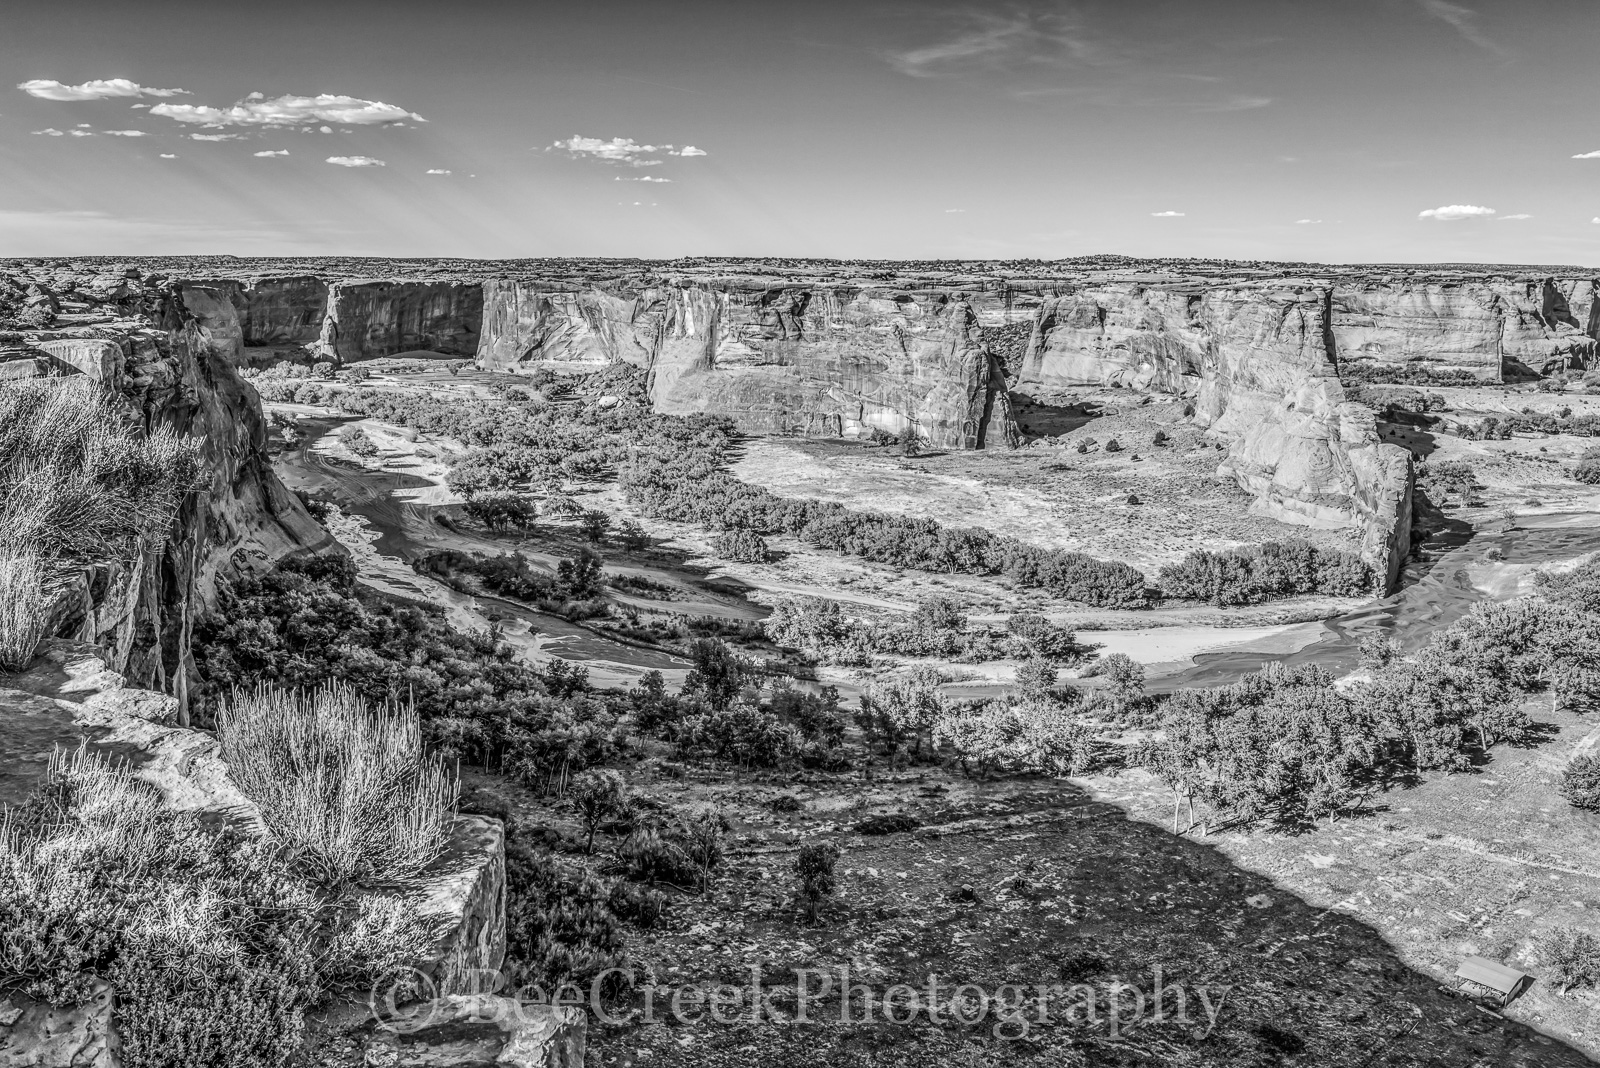 Canyon de Chelly BW-This is an image of the Canyon de Chelly that we created as a black and white. I thought he BW...